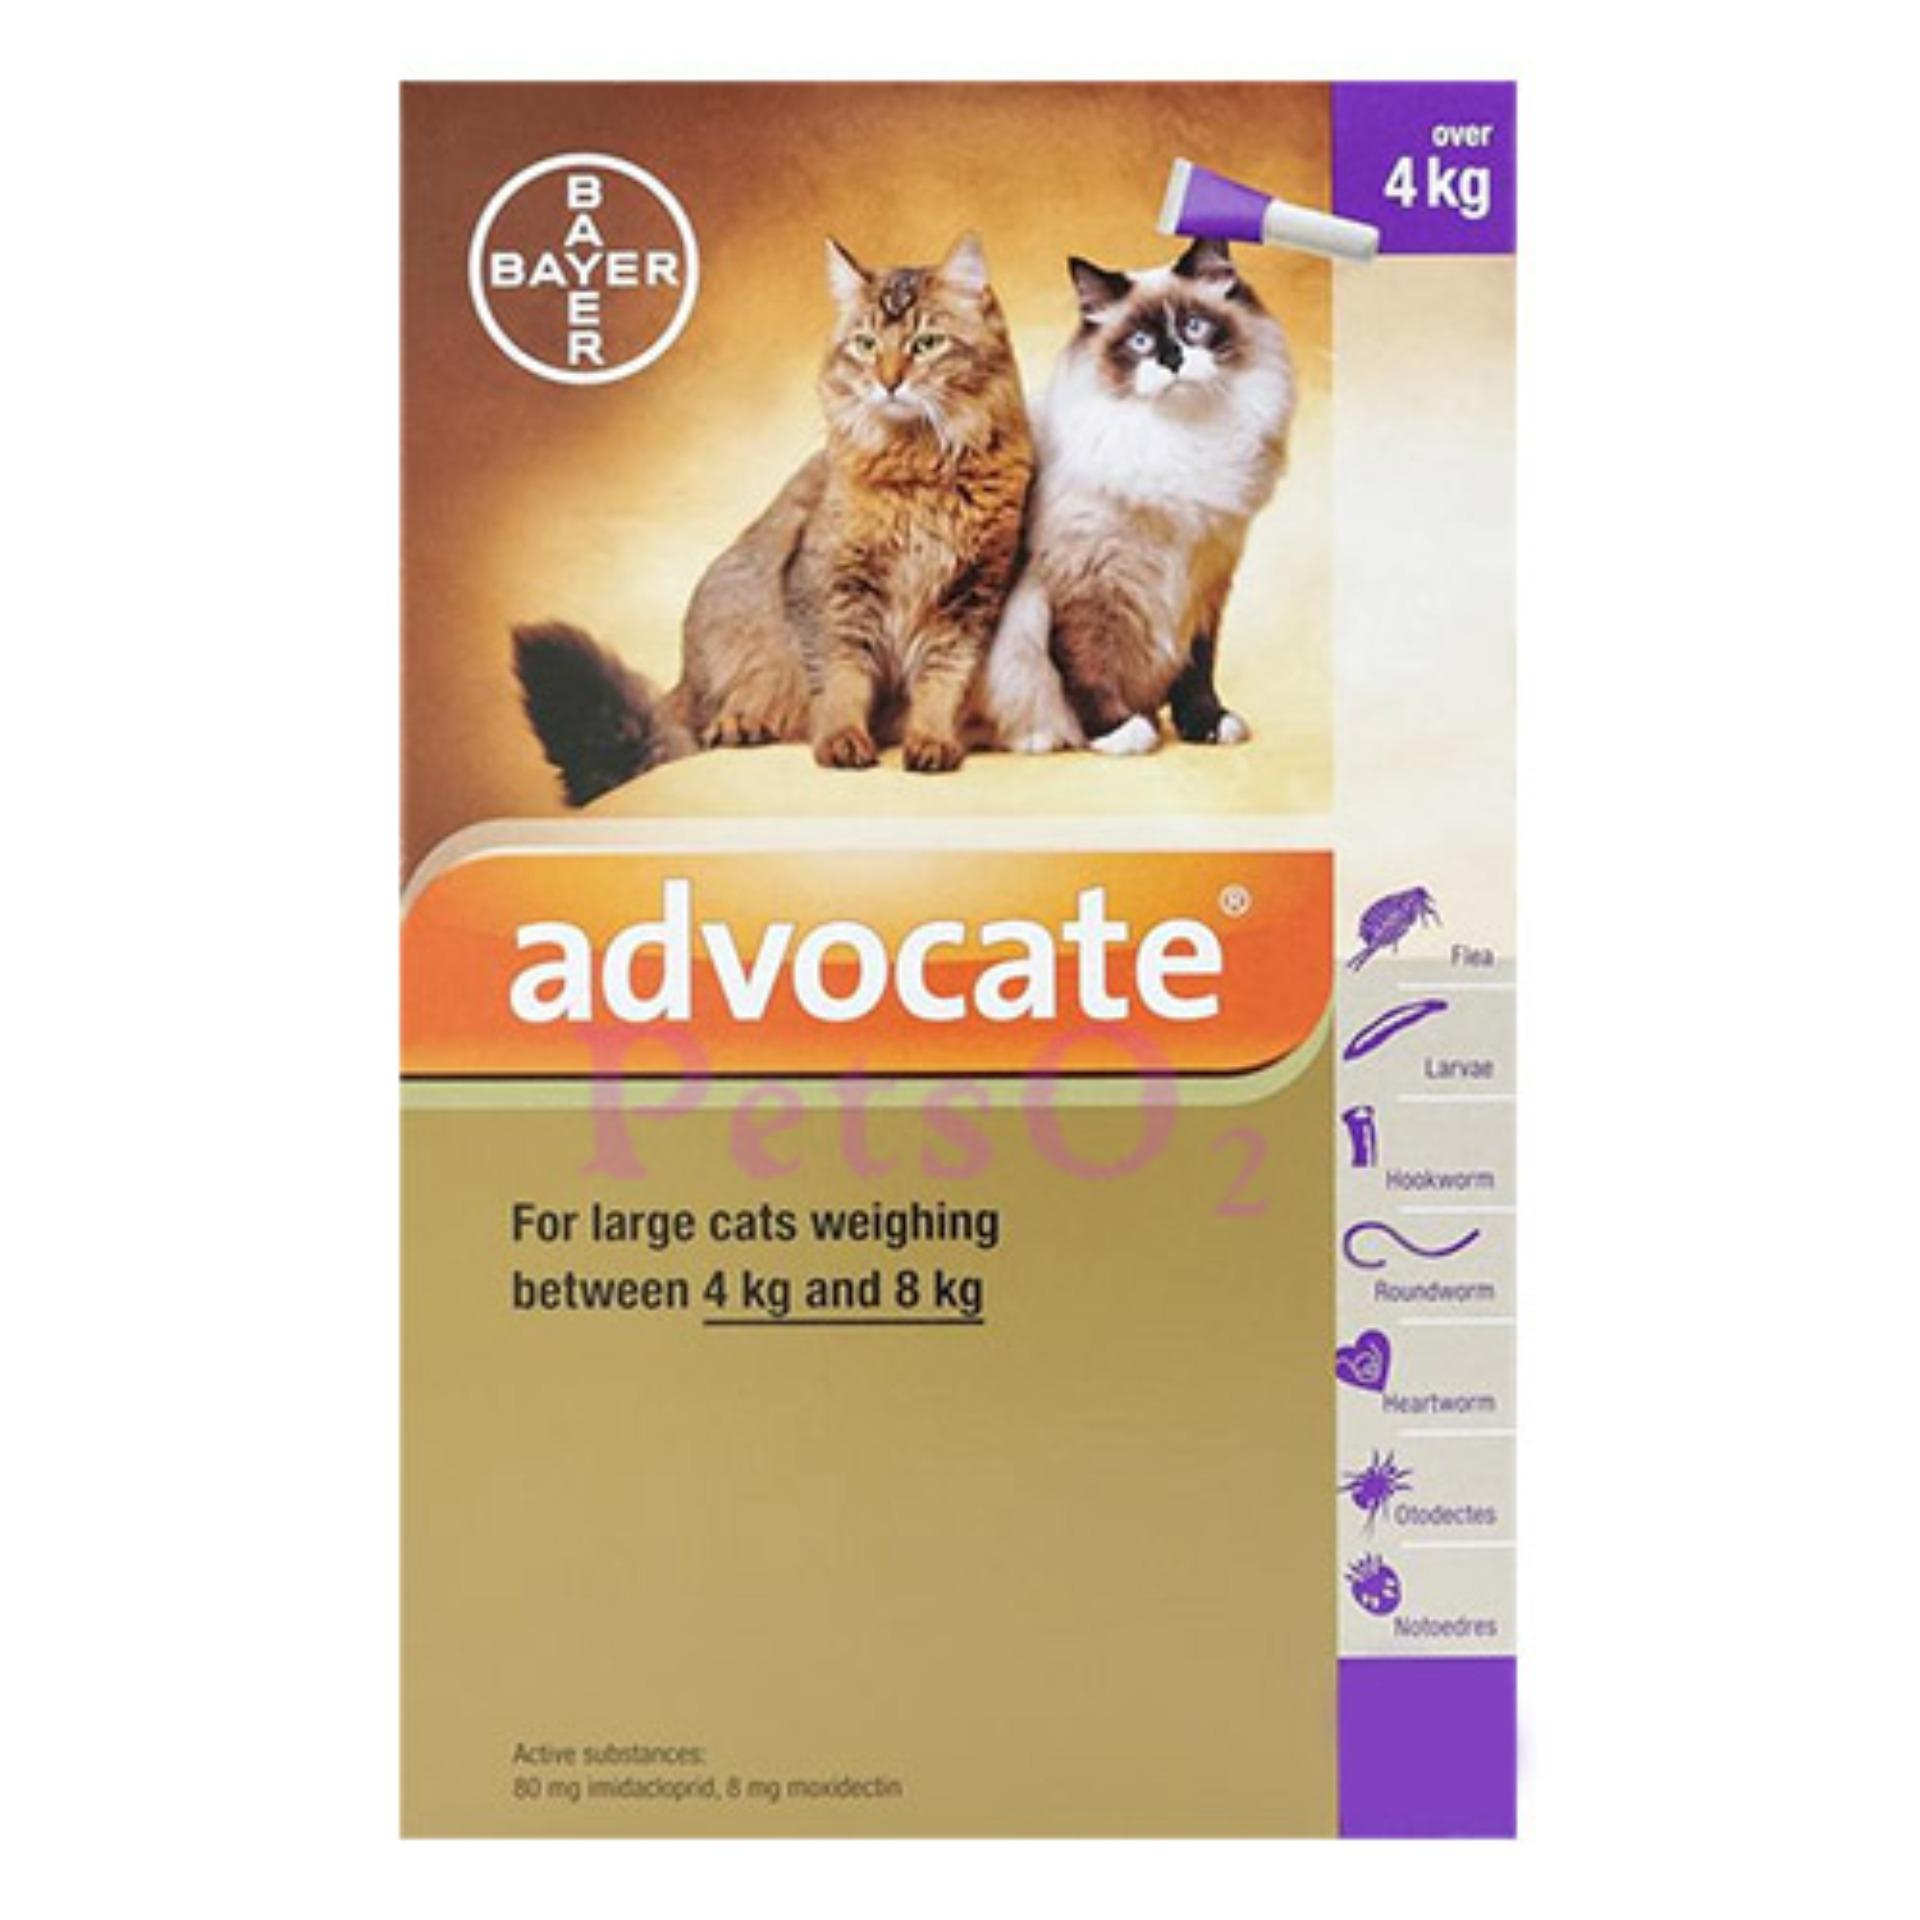 Bayer Advocate Flea And Heartworm Treatment For Cats (4-8kg) By Petso2.